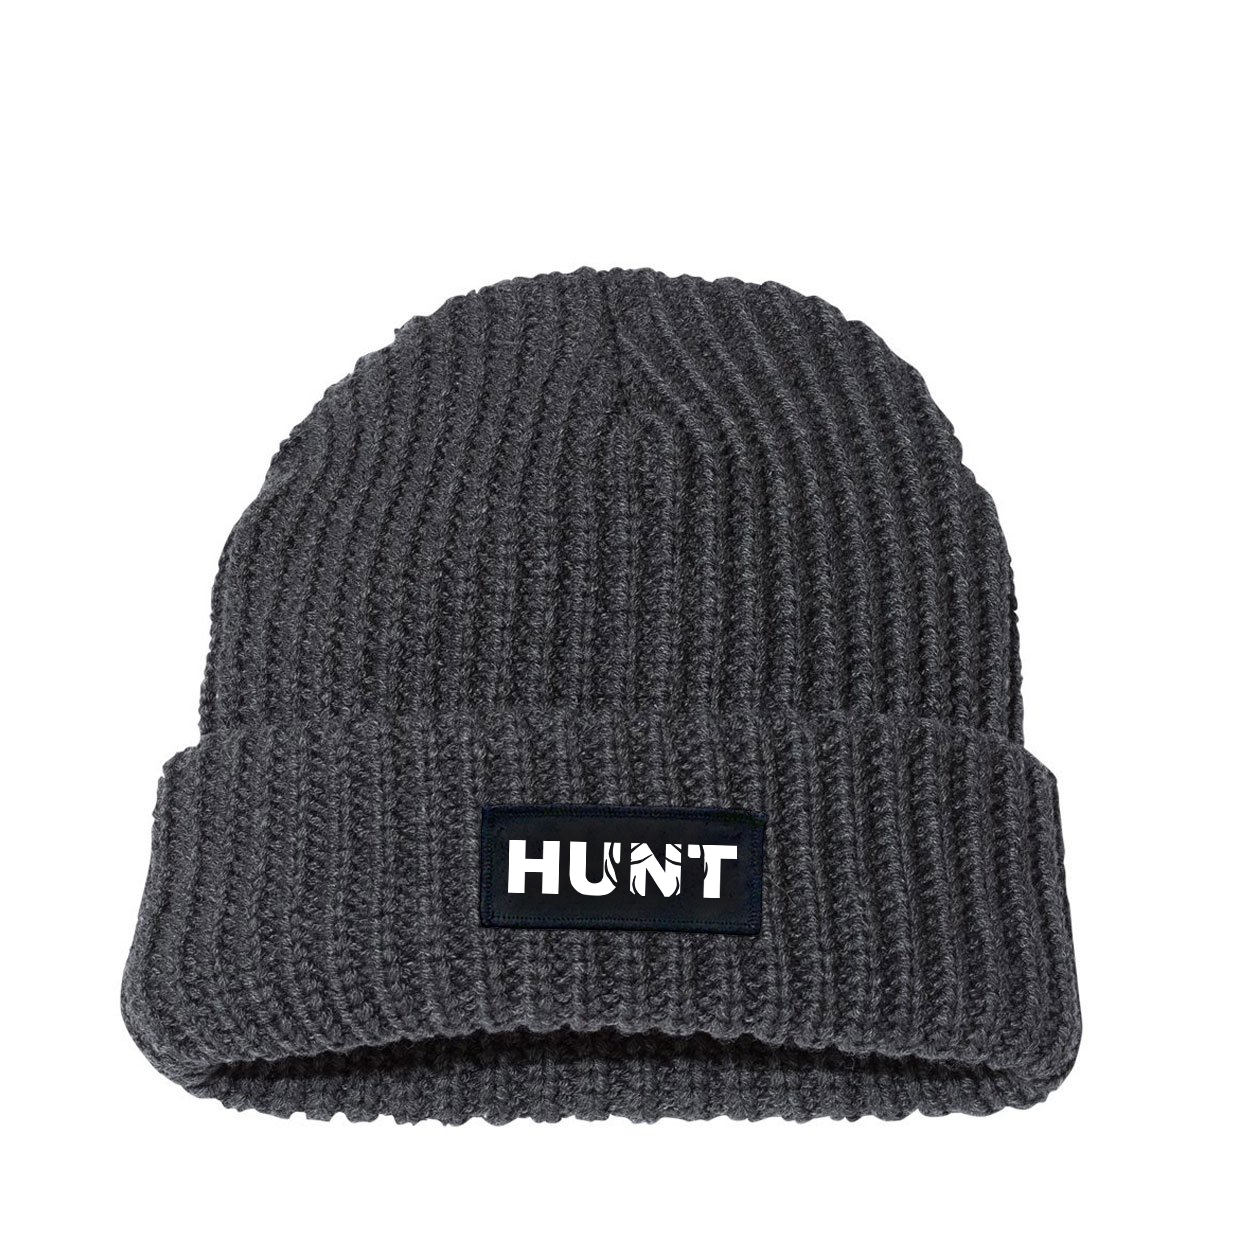 Hunt Rack Logo Night Out Woven Patch Roll Up Jumbo Chunky Knit Beanie Charcoal (White Logo)